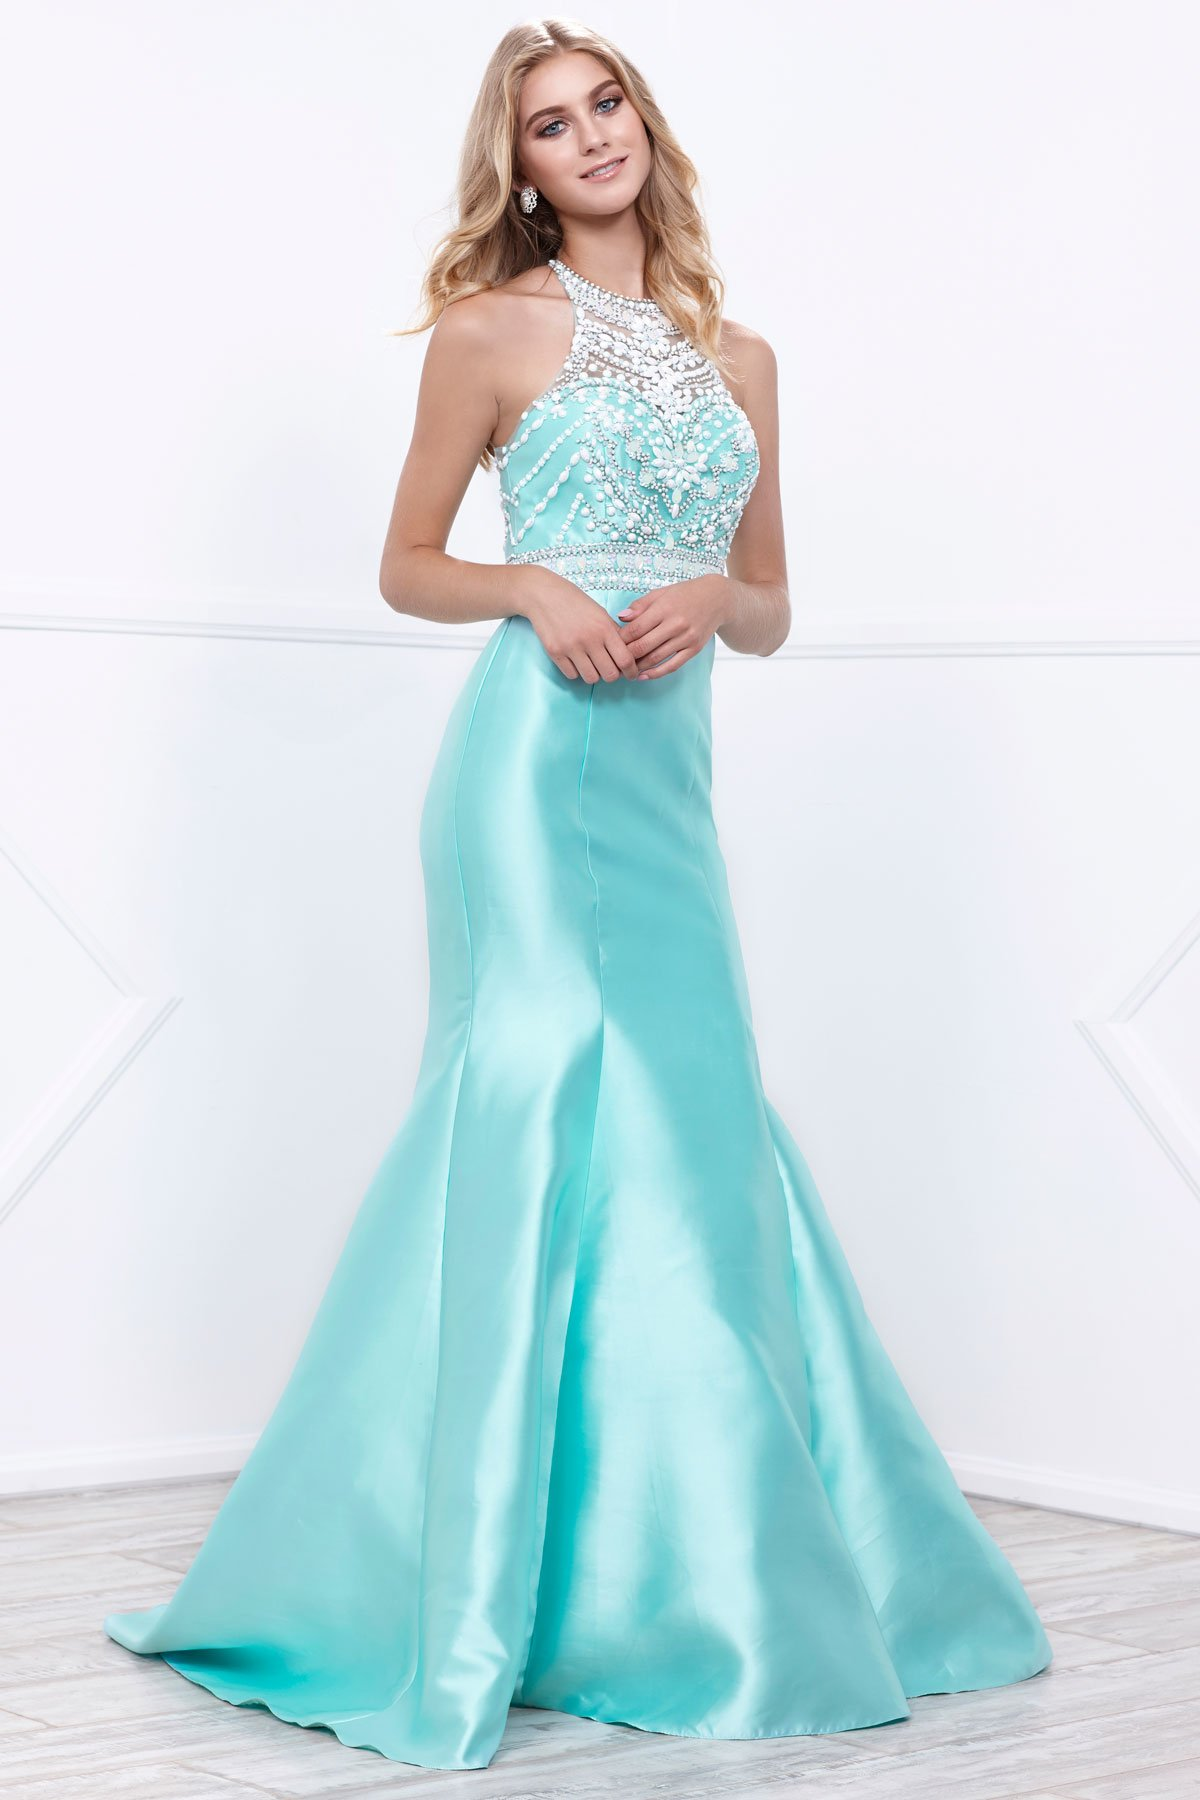 Long Prom Dress NX8296 | Prom, Trumpets and Bodice